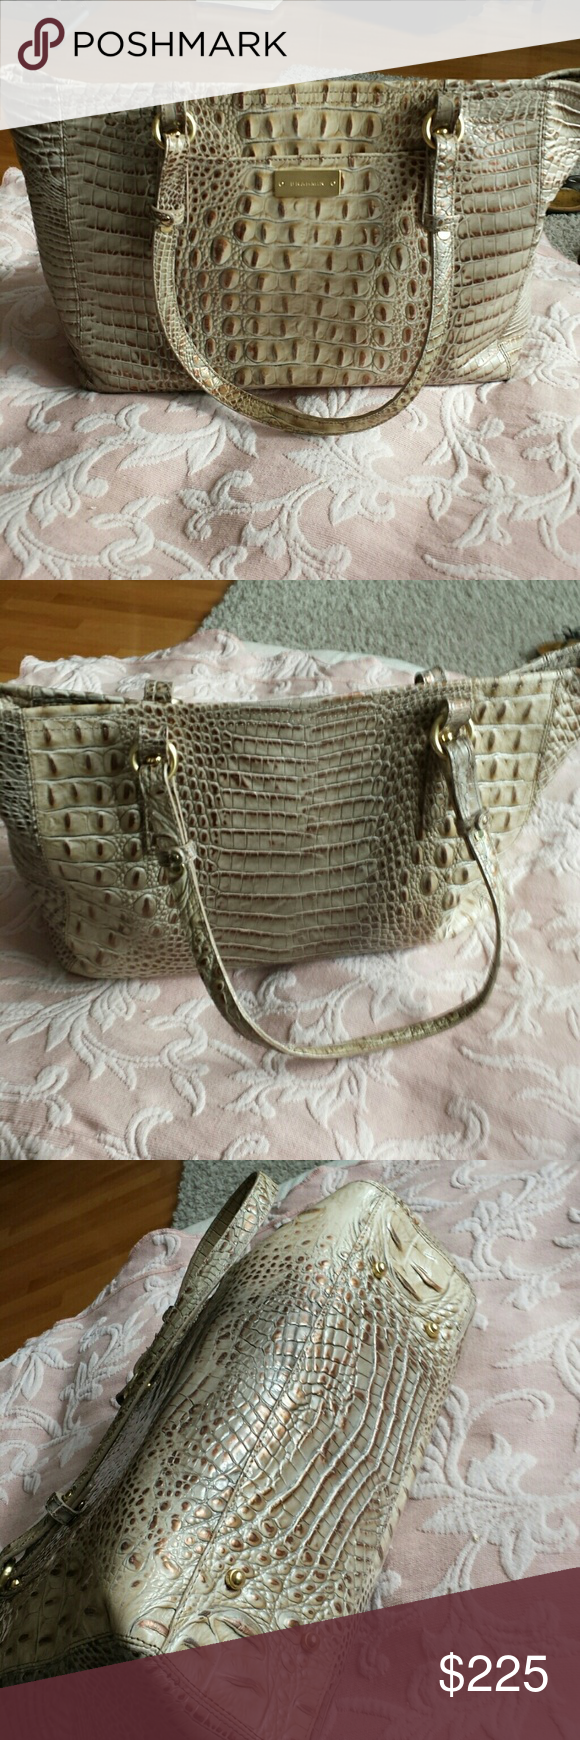 Brahmin bag with dust cover Beautiful Brahmin bag great condition has two zippered pockets on the inside to regular Pockets - pen holders ,has zipper closure one nice large pocket on the outside for your phone ,  the bottom measures 13.5 across and 10 inches from the top handle drop  is 10 inches   beautiful bag with tans and Browns and a copper Sheen to it  feet on the bottom very very good condition no wear on the corners Brahmin  Bags Totes